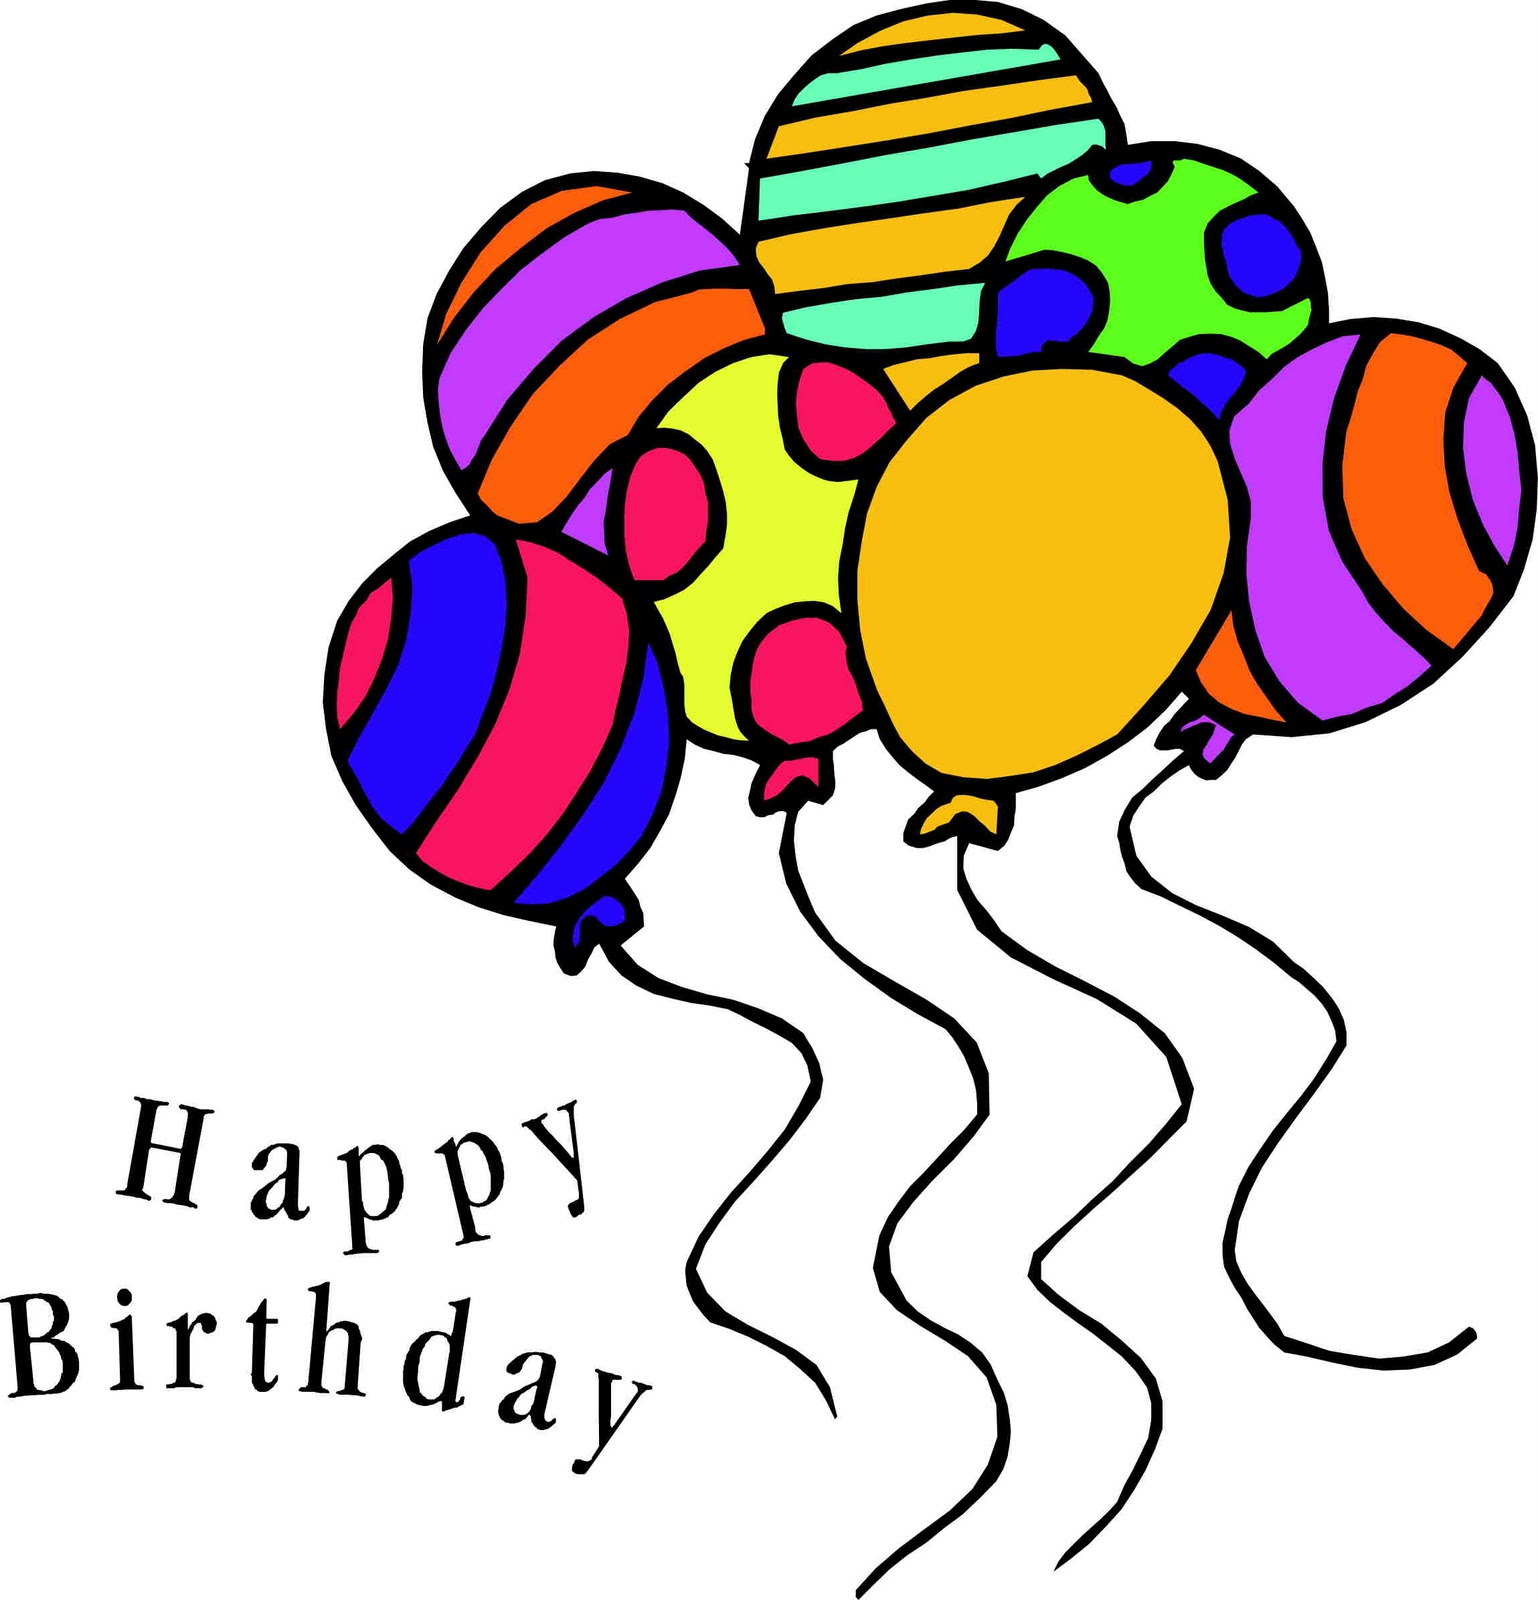 hight resolution of 50 birthday clipart free download clip art free clip art on